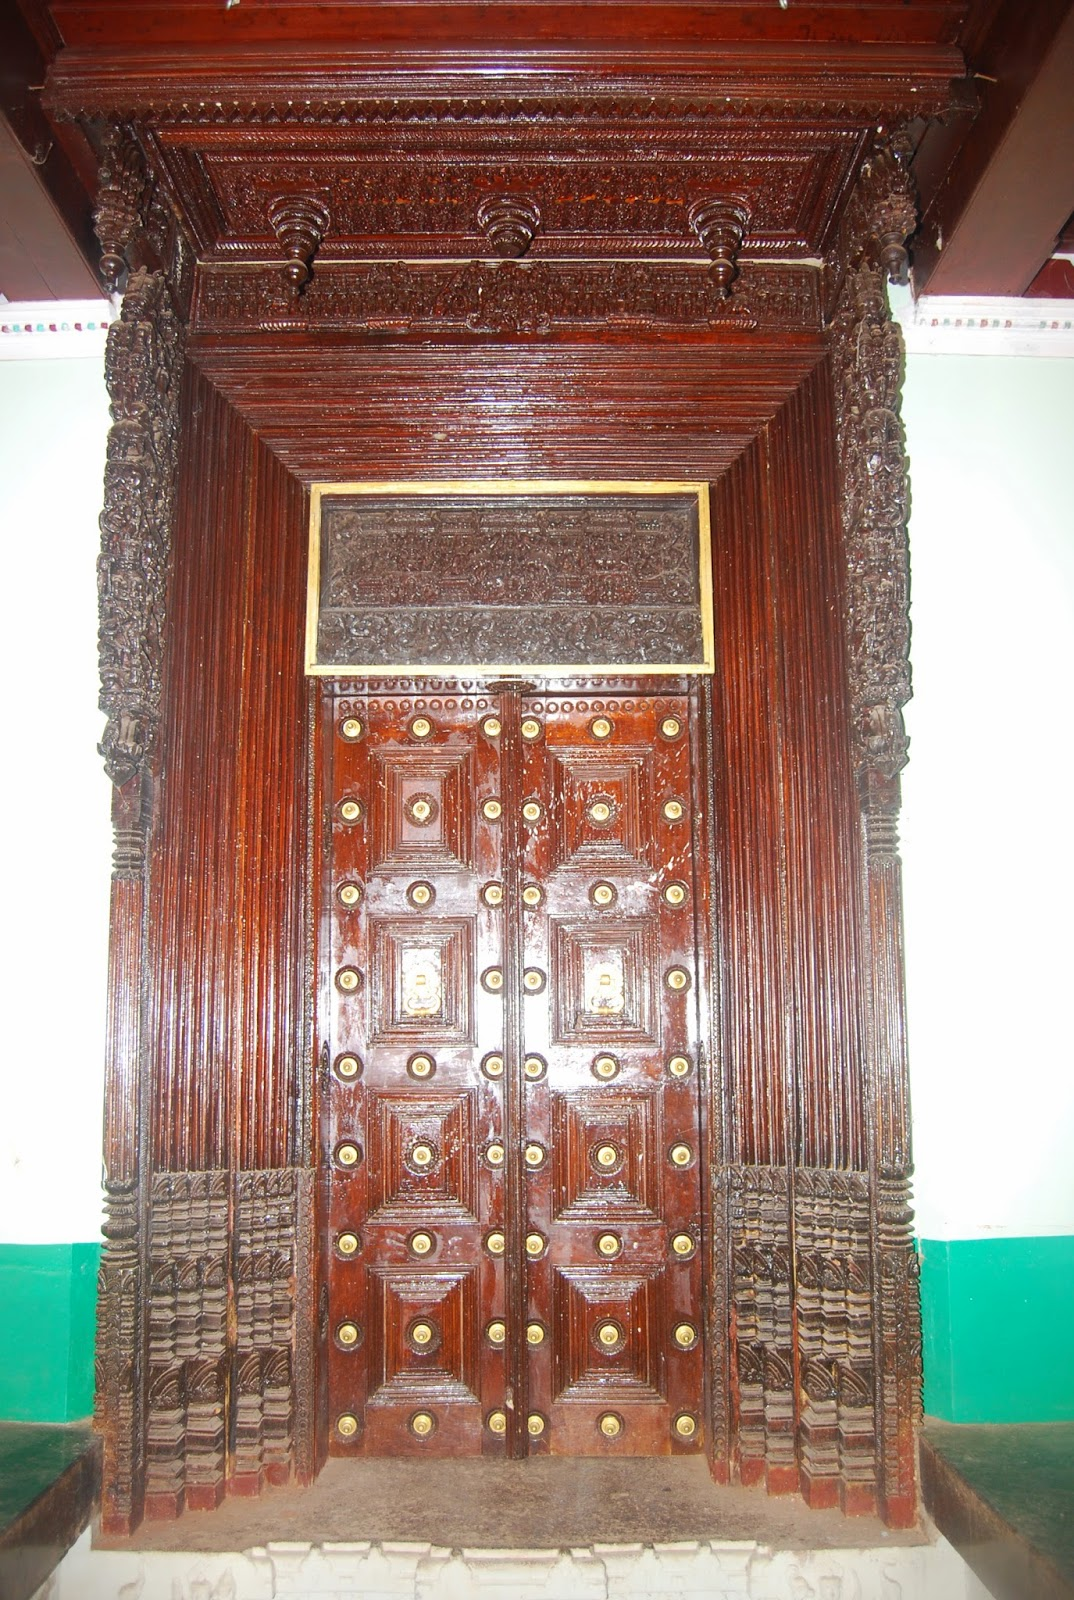 ... adoration basically include antique furniture, antique wooden  artifacts, old paintings, old carvings, antique wooden doors and used  antique furniture. - KARAIKUDI CHETTINADU ARTS: Antiques Wooden Door And Panel In India